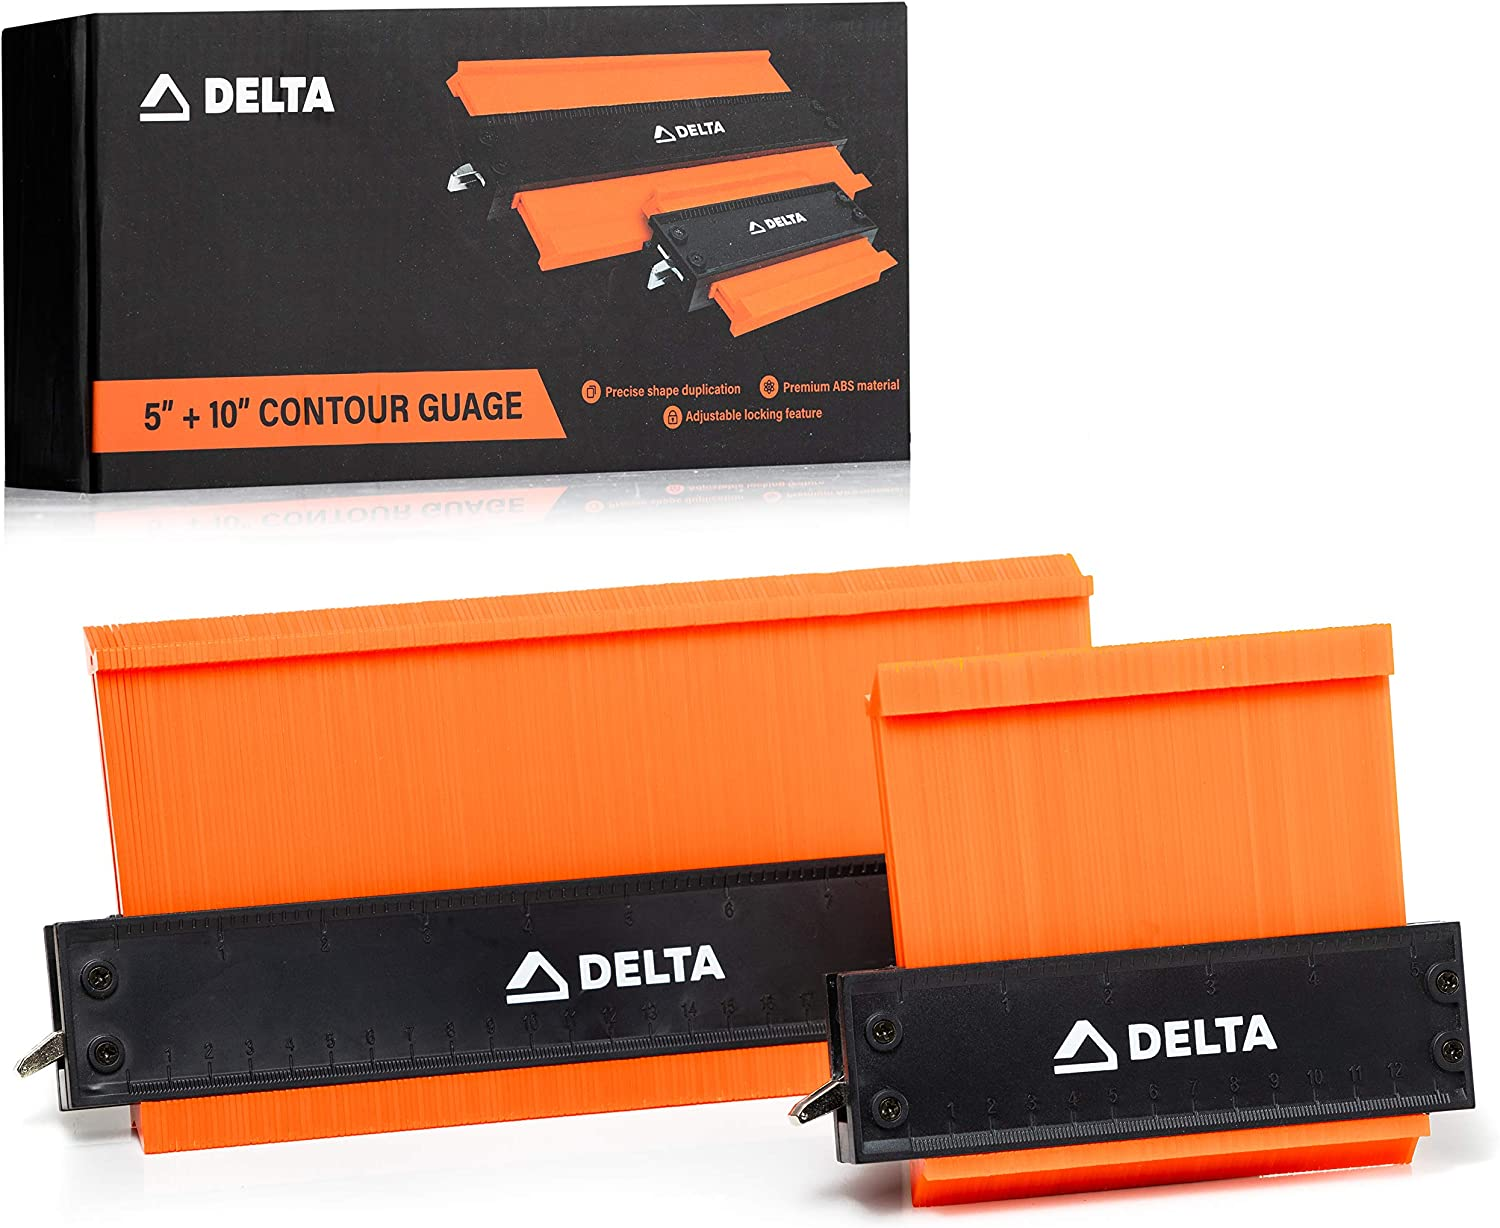 Delta Contour Gauge with Adjustable Lock: 5 and 10 Inch Contour Gauge and Profile Duplicator Set - Home Improvement Tools - Shape Duplication and Scribe Tool for DIY, Woodworking, and More - 2 Pack